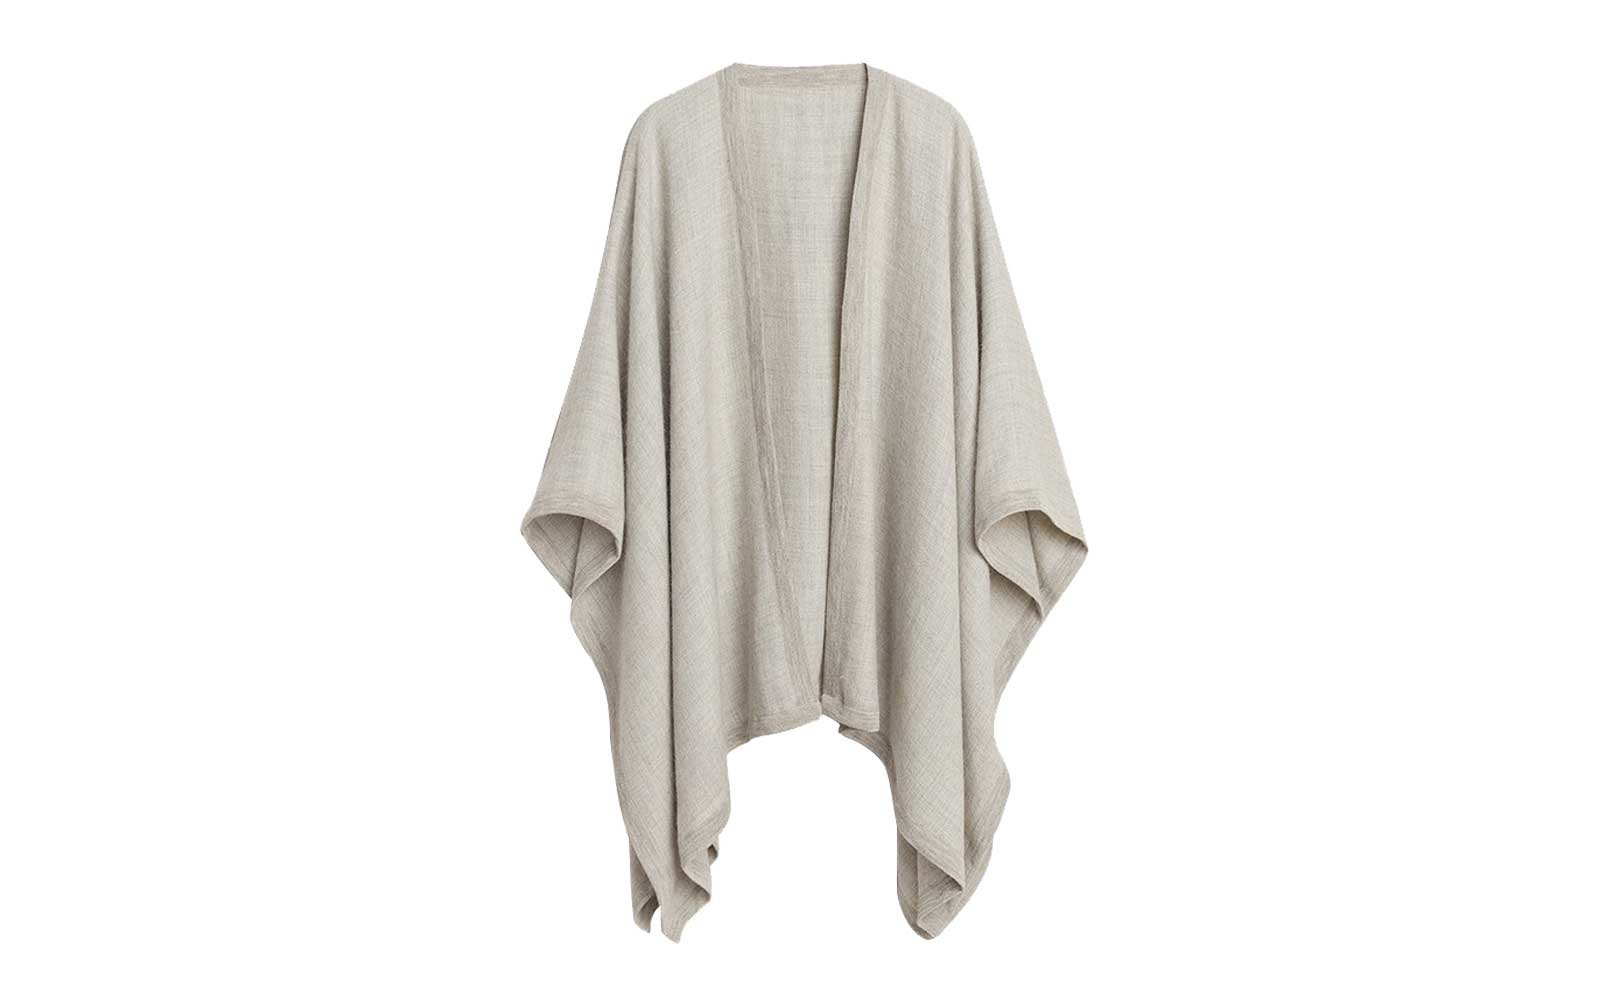 a21169d76912f The Best Travel Wraps, Ponchos, and Scarves | Travel + Leisure